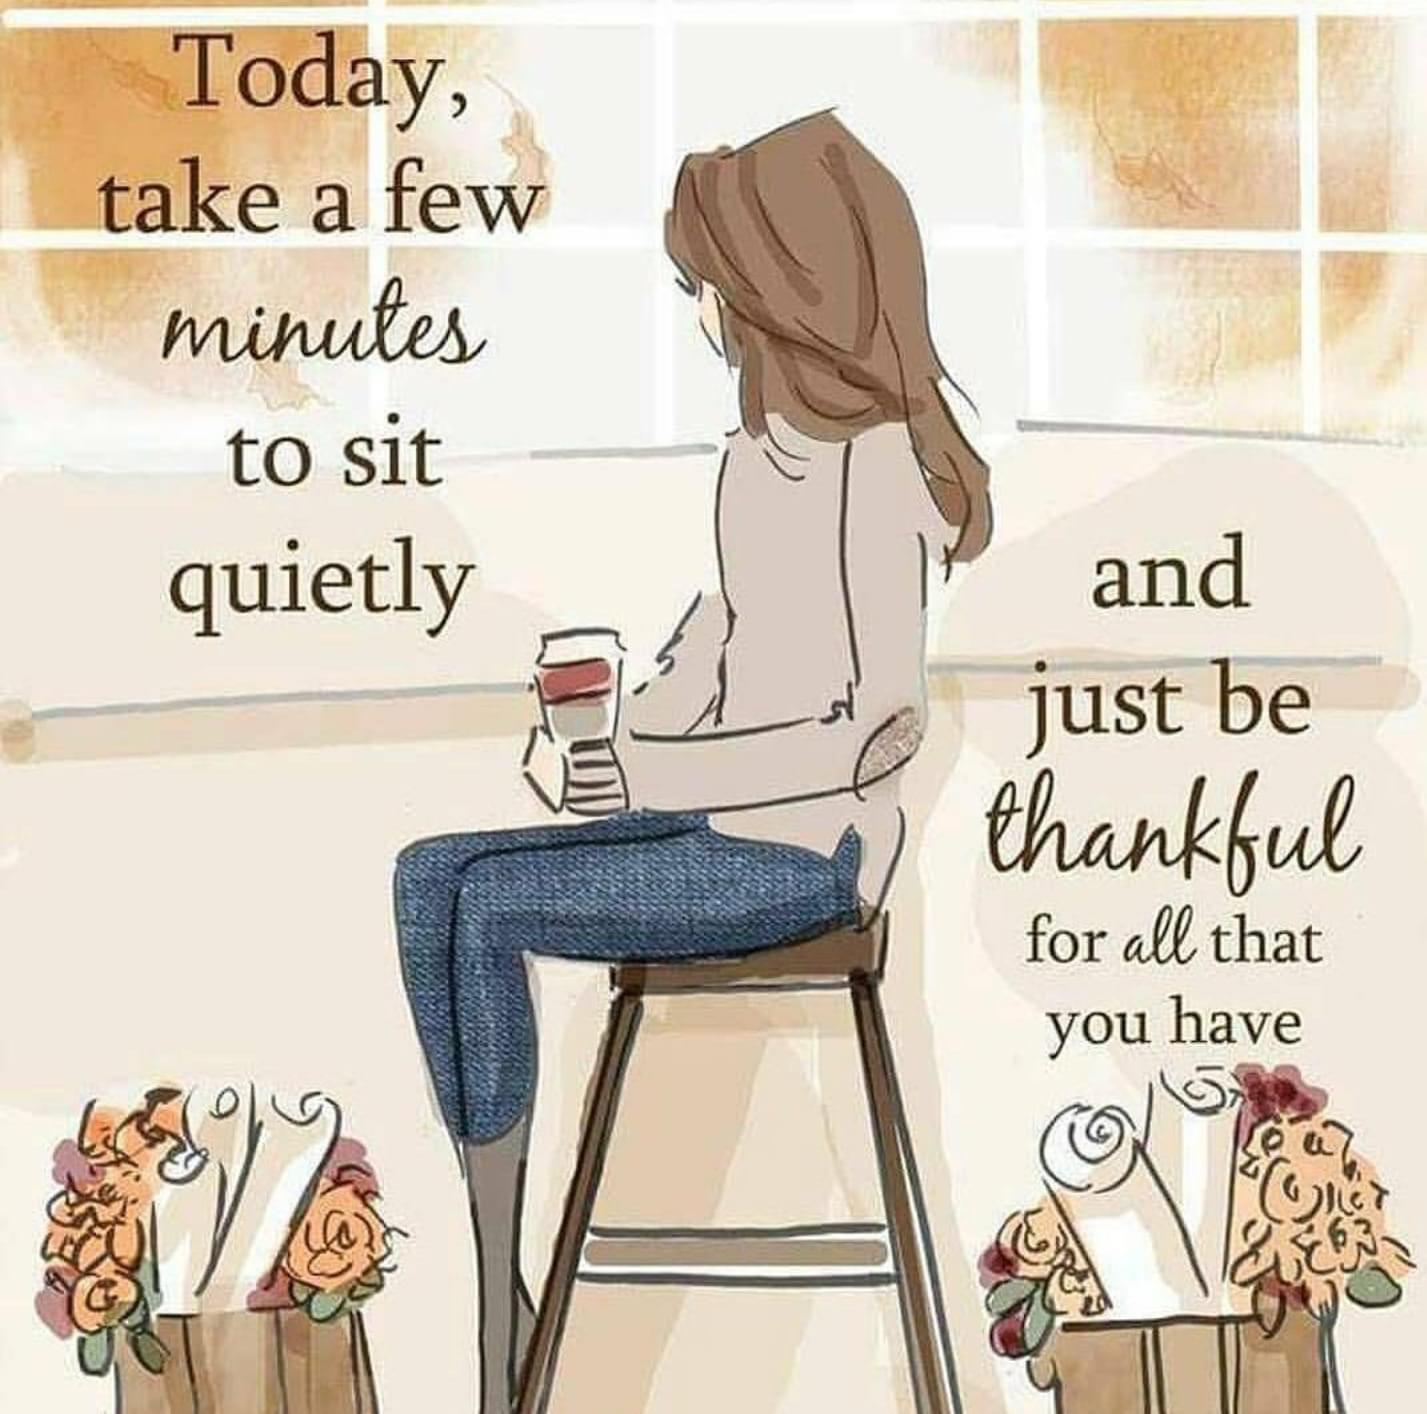 [Image] Today take a few minutes to sit quietly…